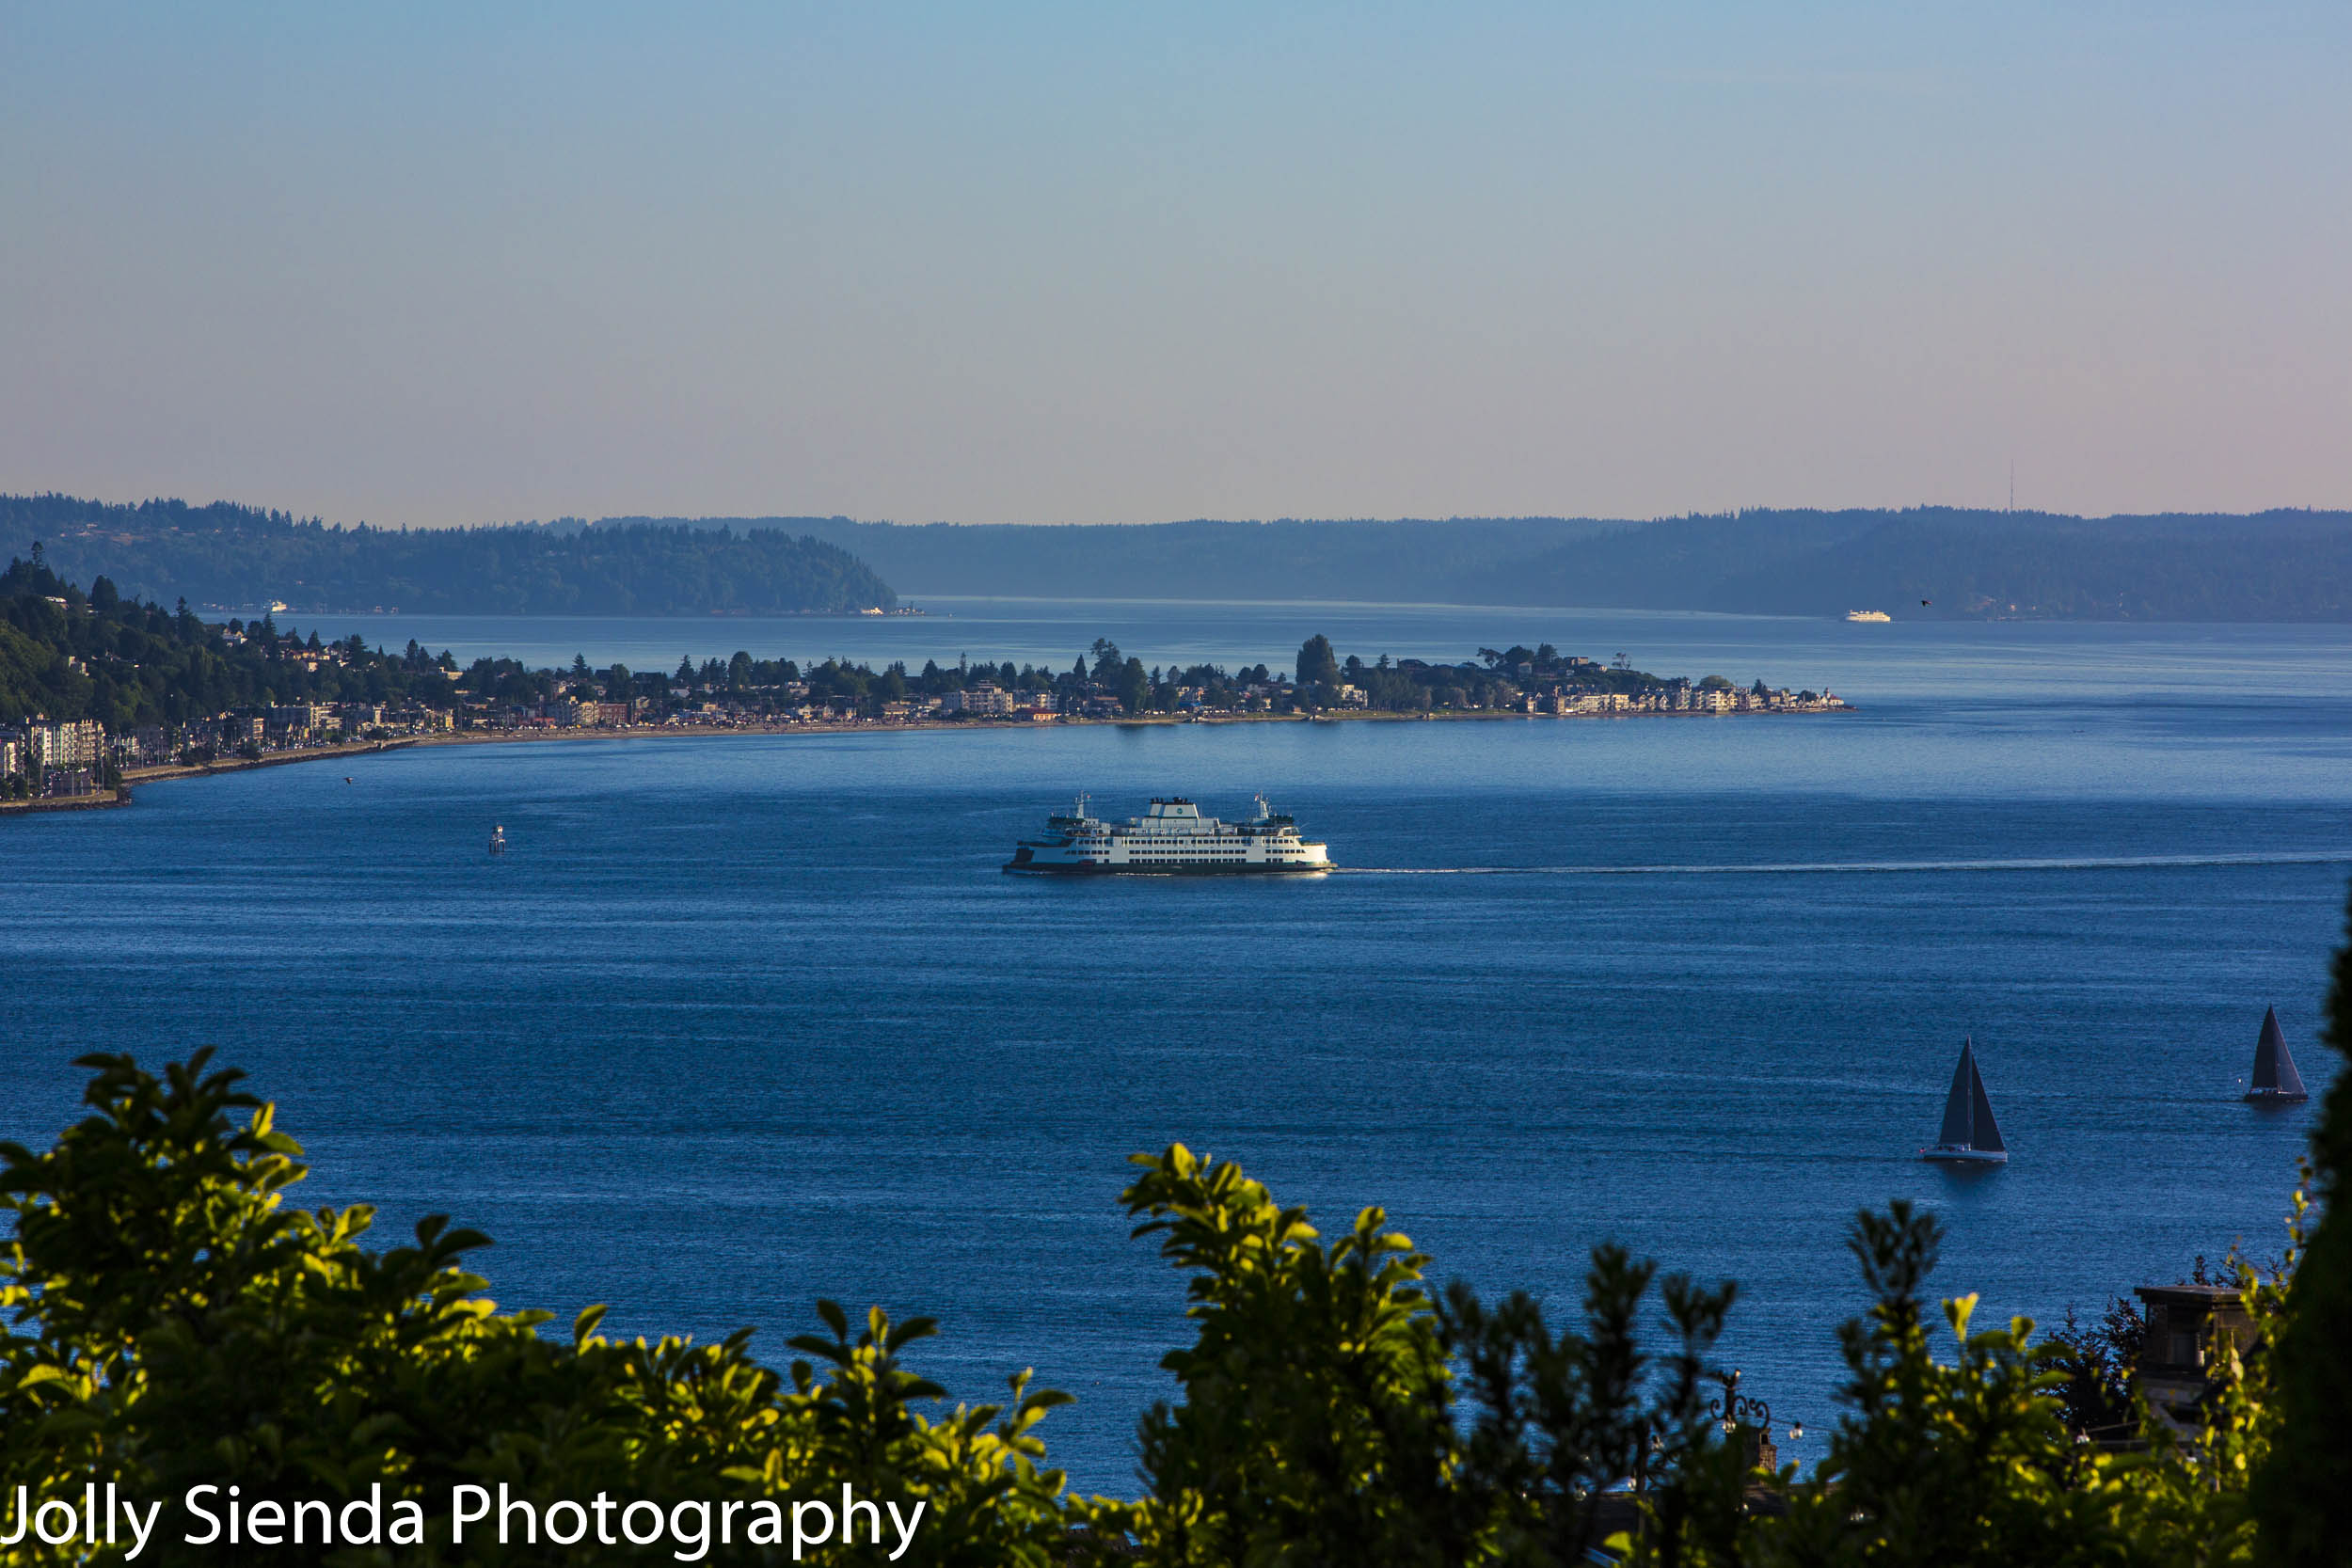 Ferry and sailboats on Elliott Bay passing West Seattle